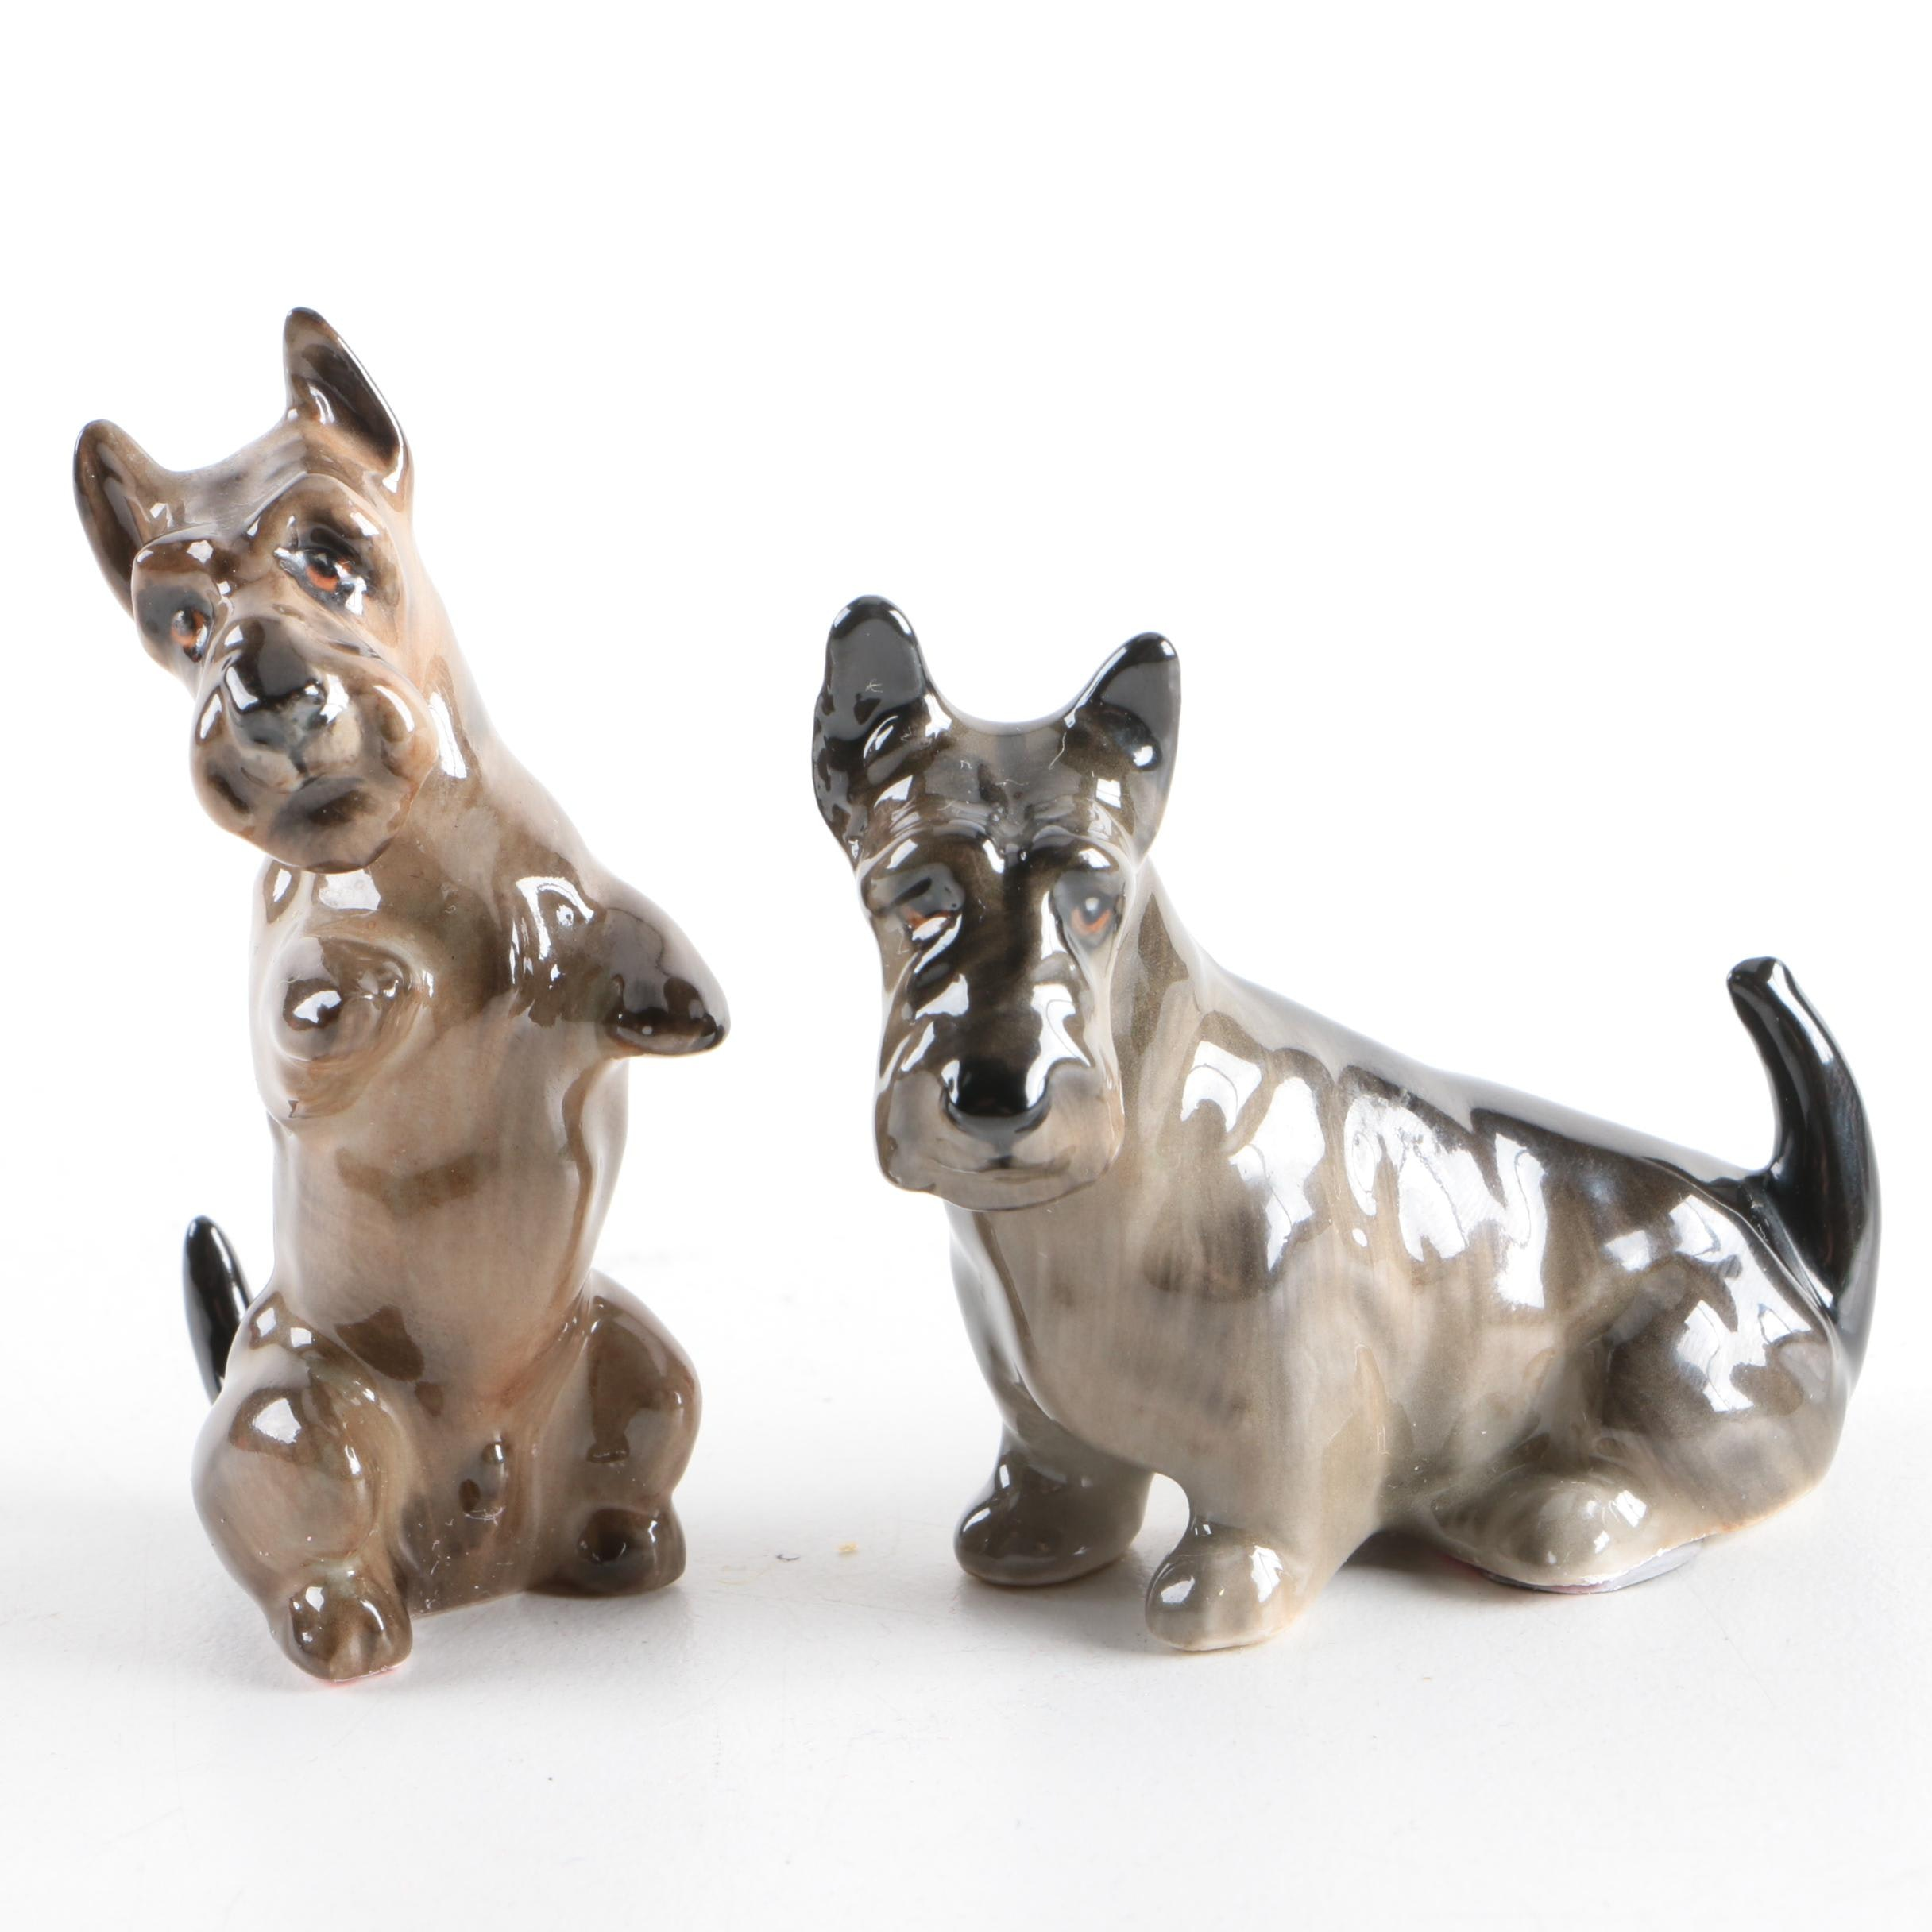 Group of Royal Doulton Scottish Terrier Figurines